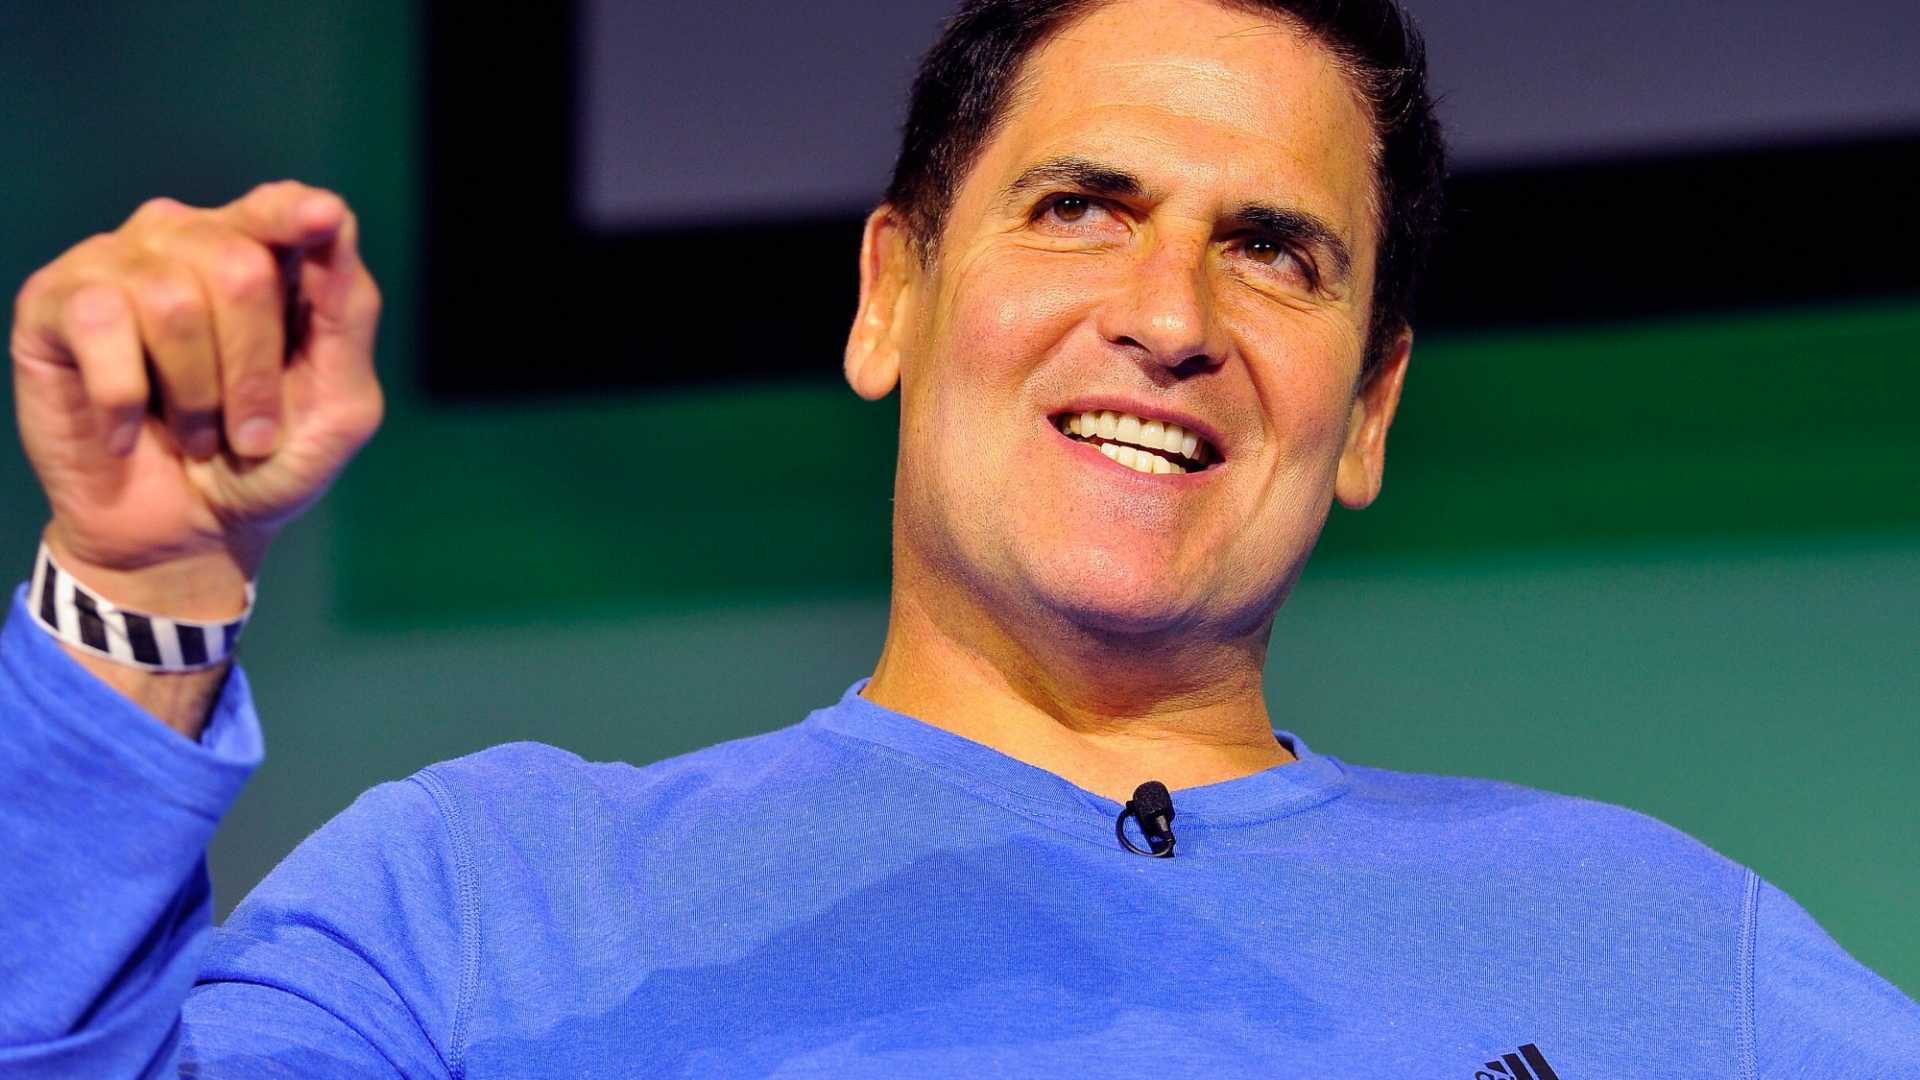 Mark Cuban: Here's Why Millennials Love Bernie Sanders